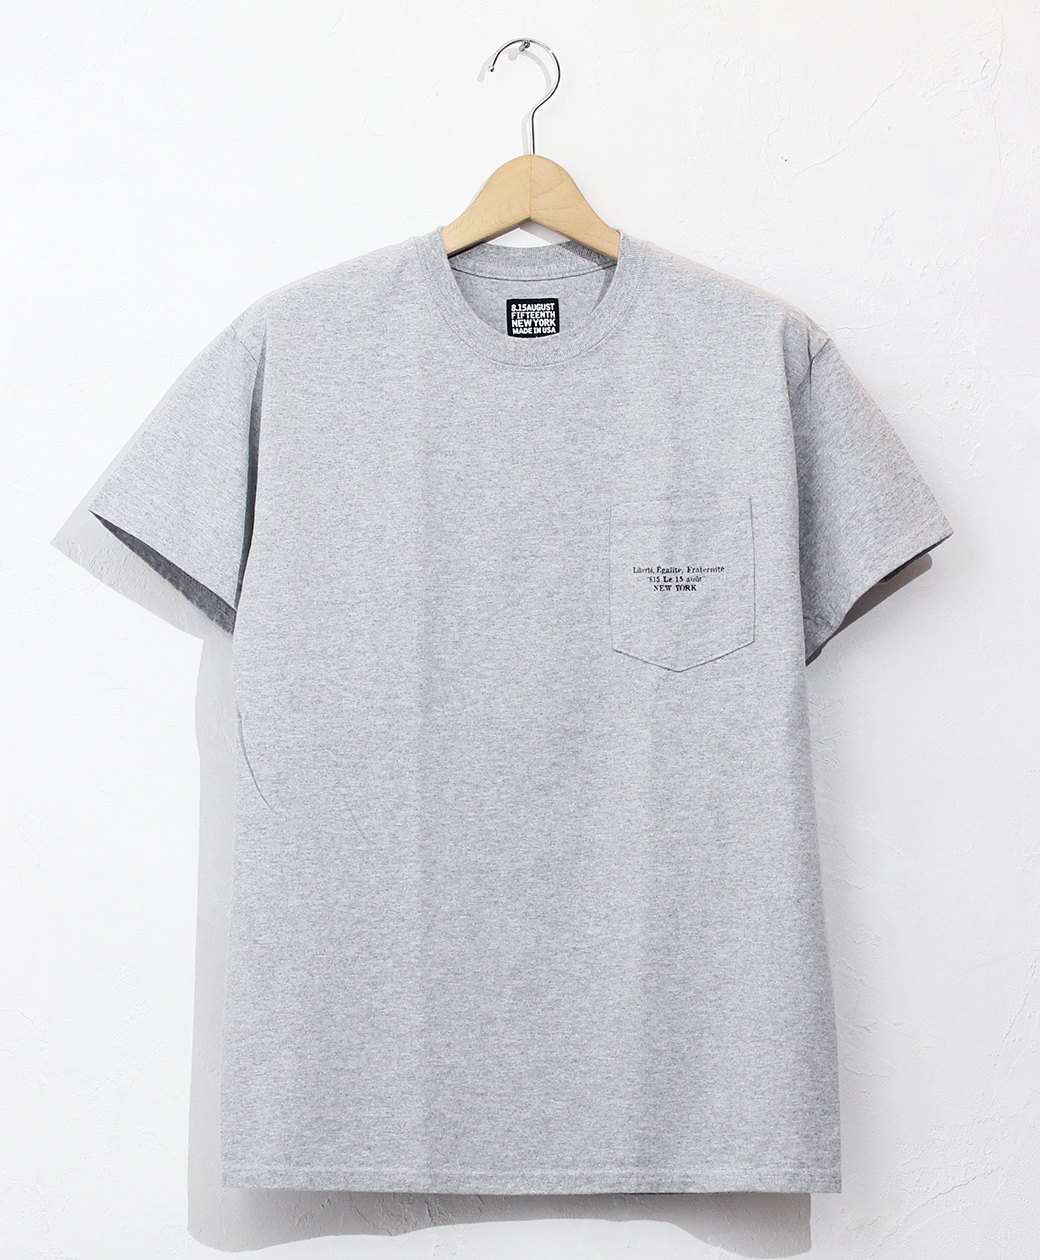 8.15 August Fifteenth LOGO POCKET TEE FRENCH LOGO(HEATHER GREY)